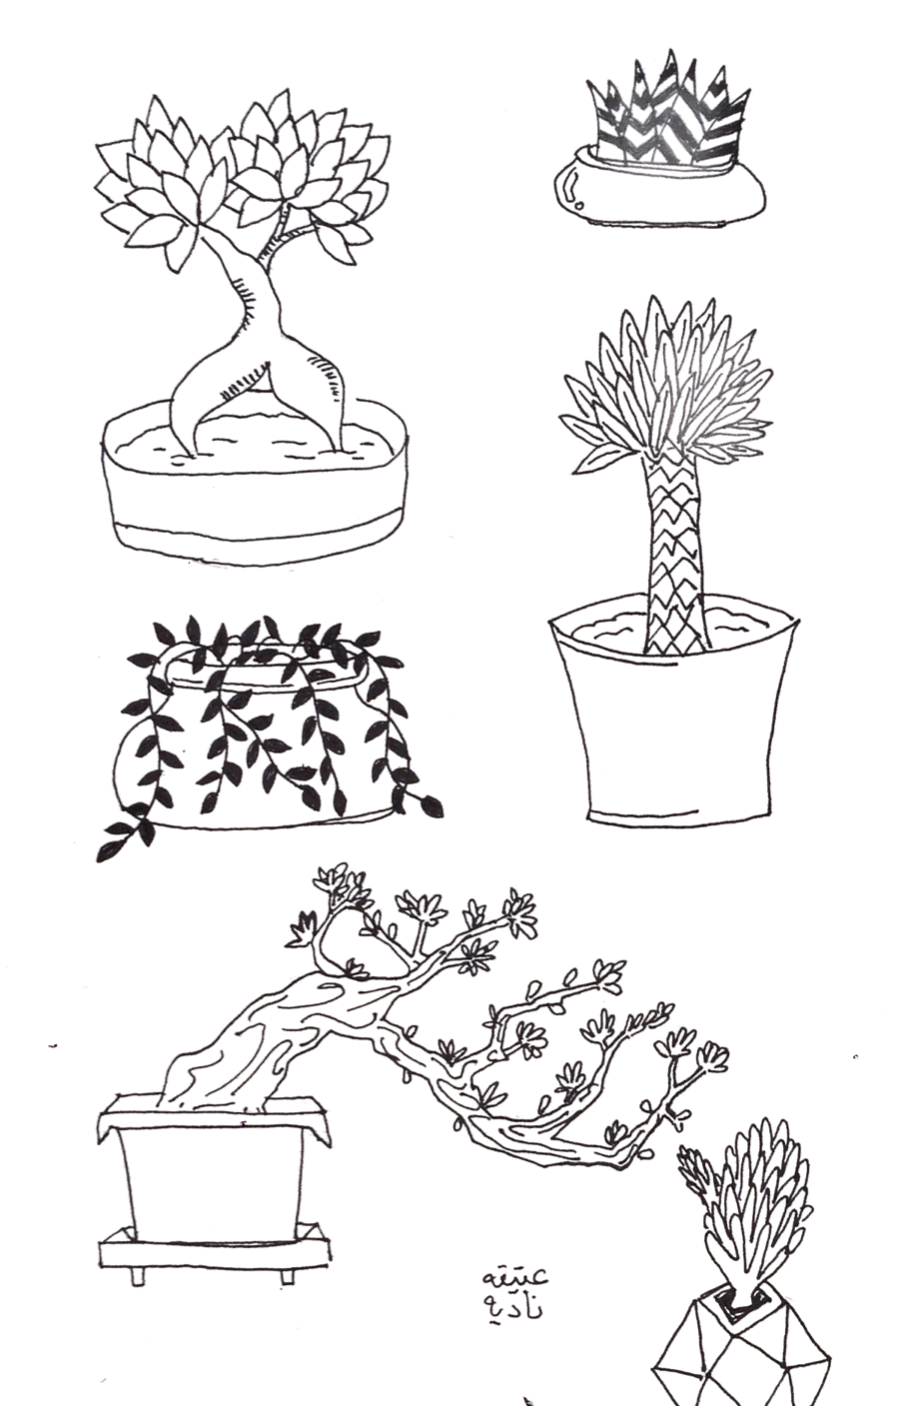 Assortment of plants